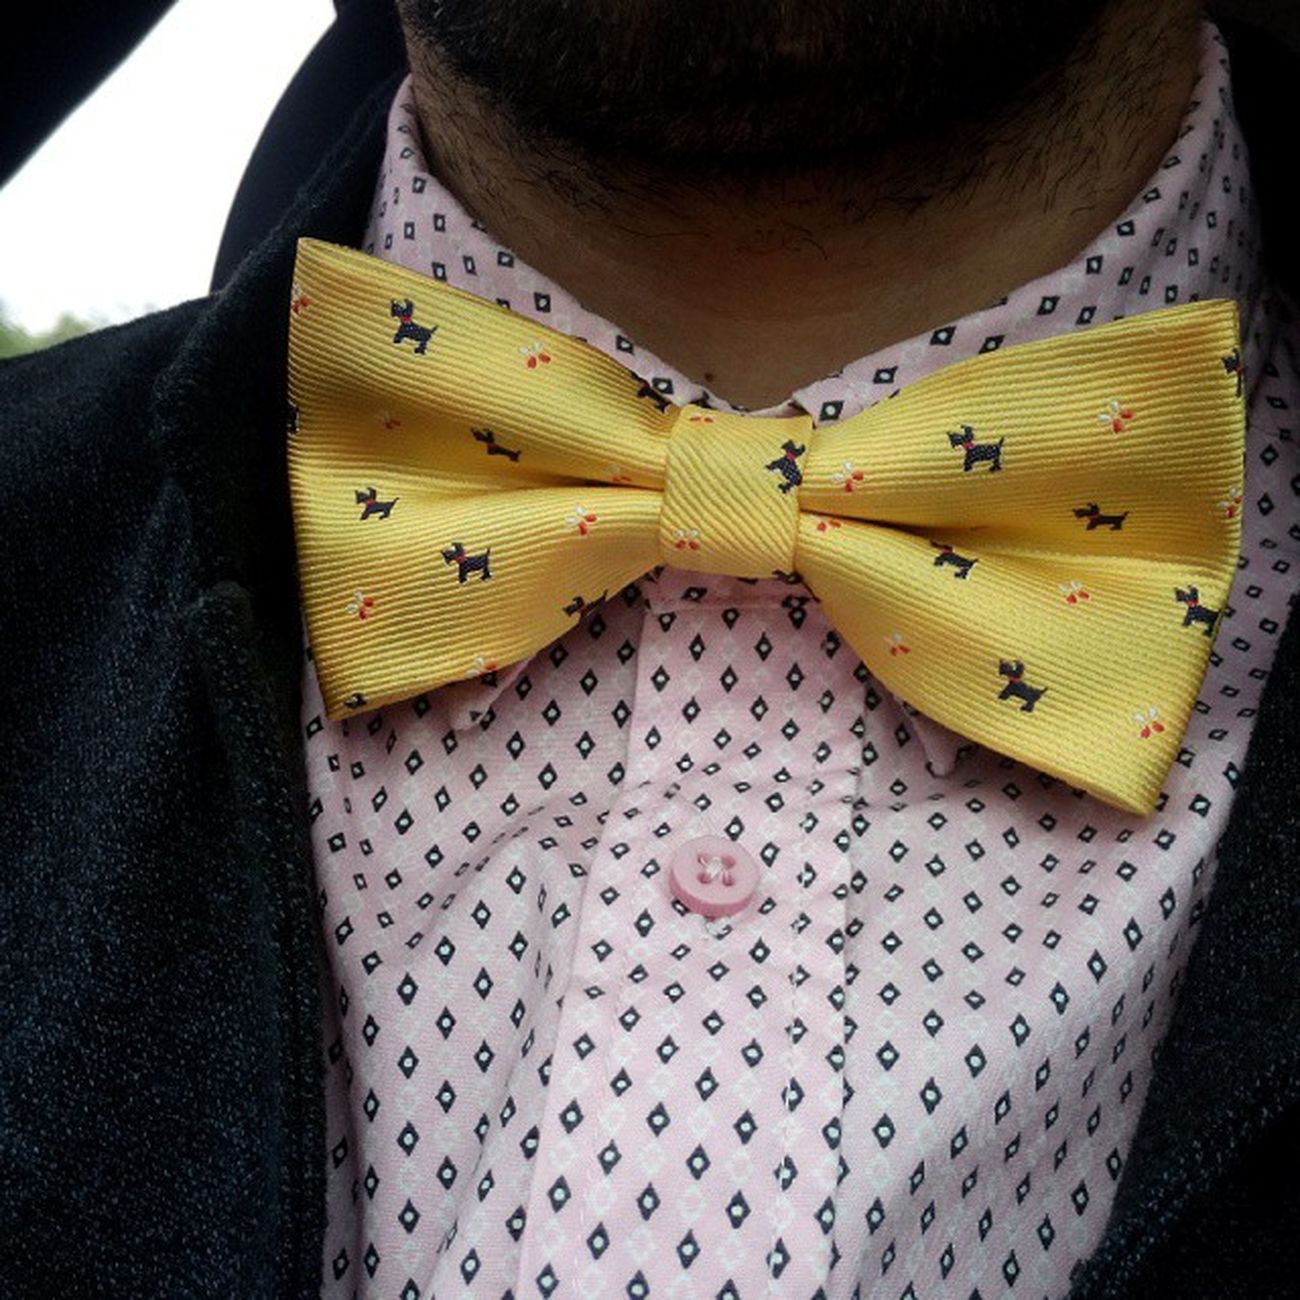 бабочка Bowtie Bow_tie Butterfly жёлтые барбосики it's a doggy_style